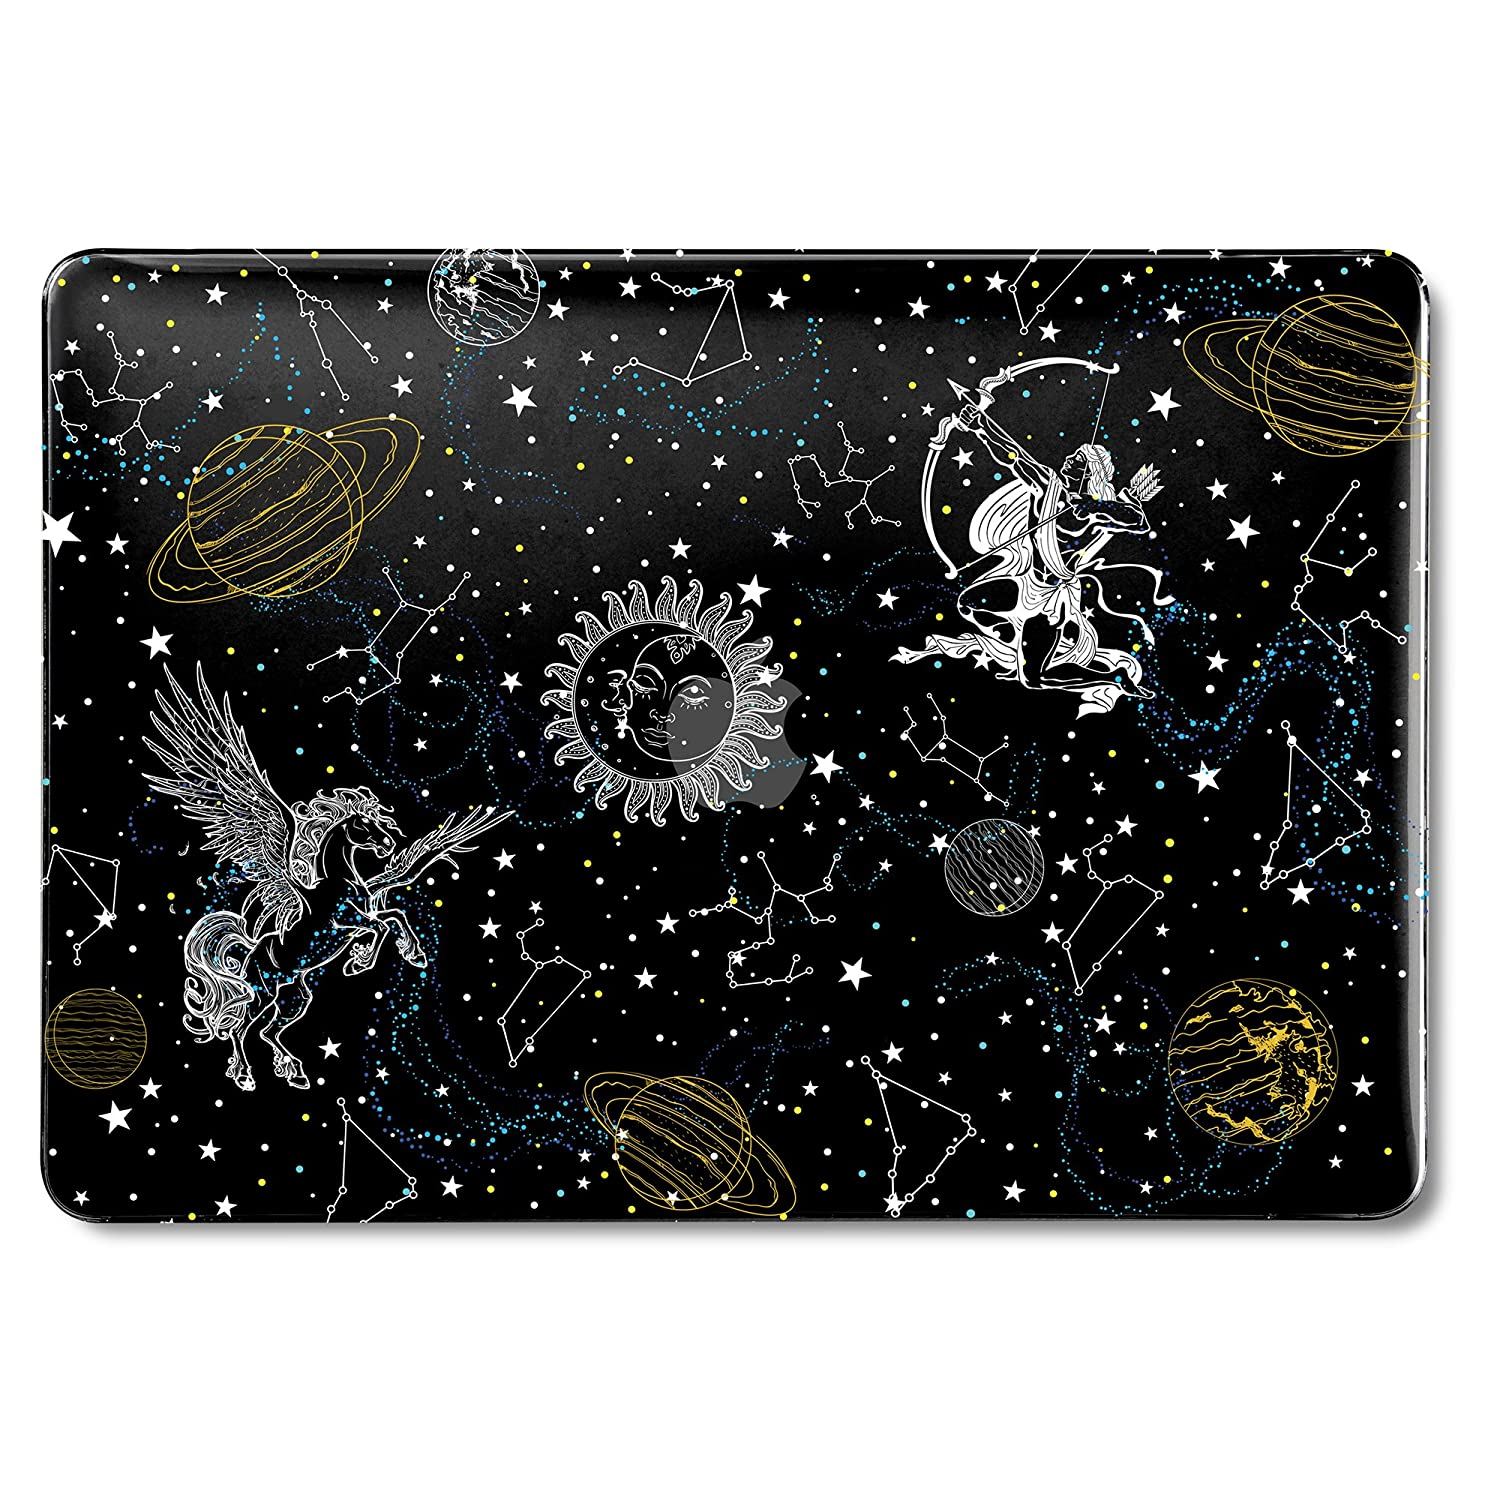 GMYLE Cactus Pattern I Soft-Touch Crystal Print Hard Case for Macbook Air 13 inch (Model: A1369 & A1466) NPL510386